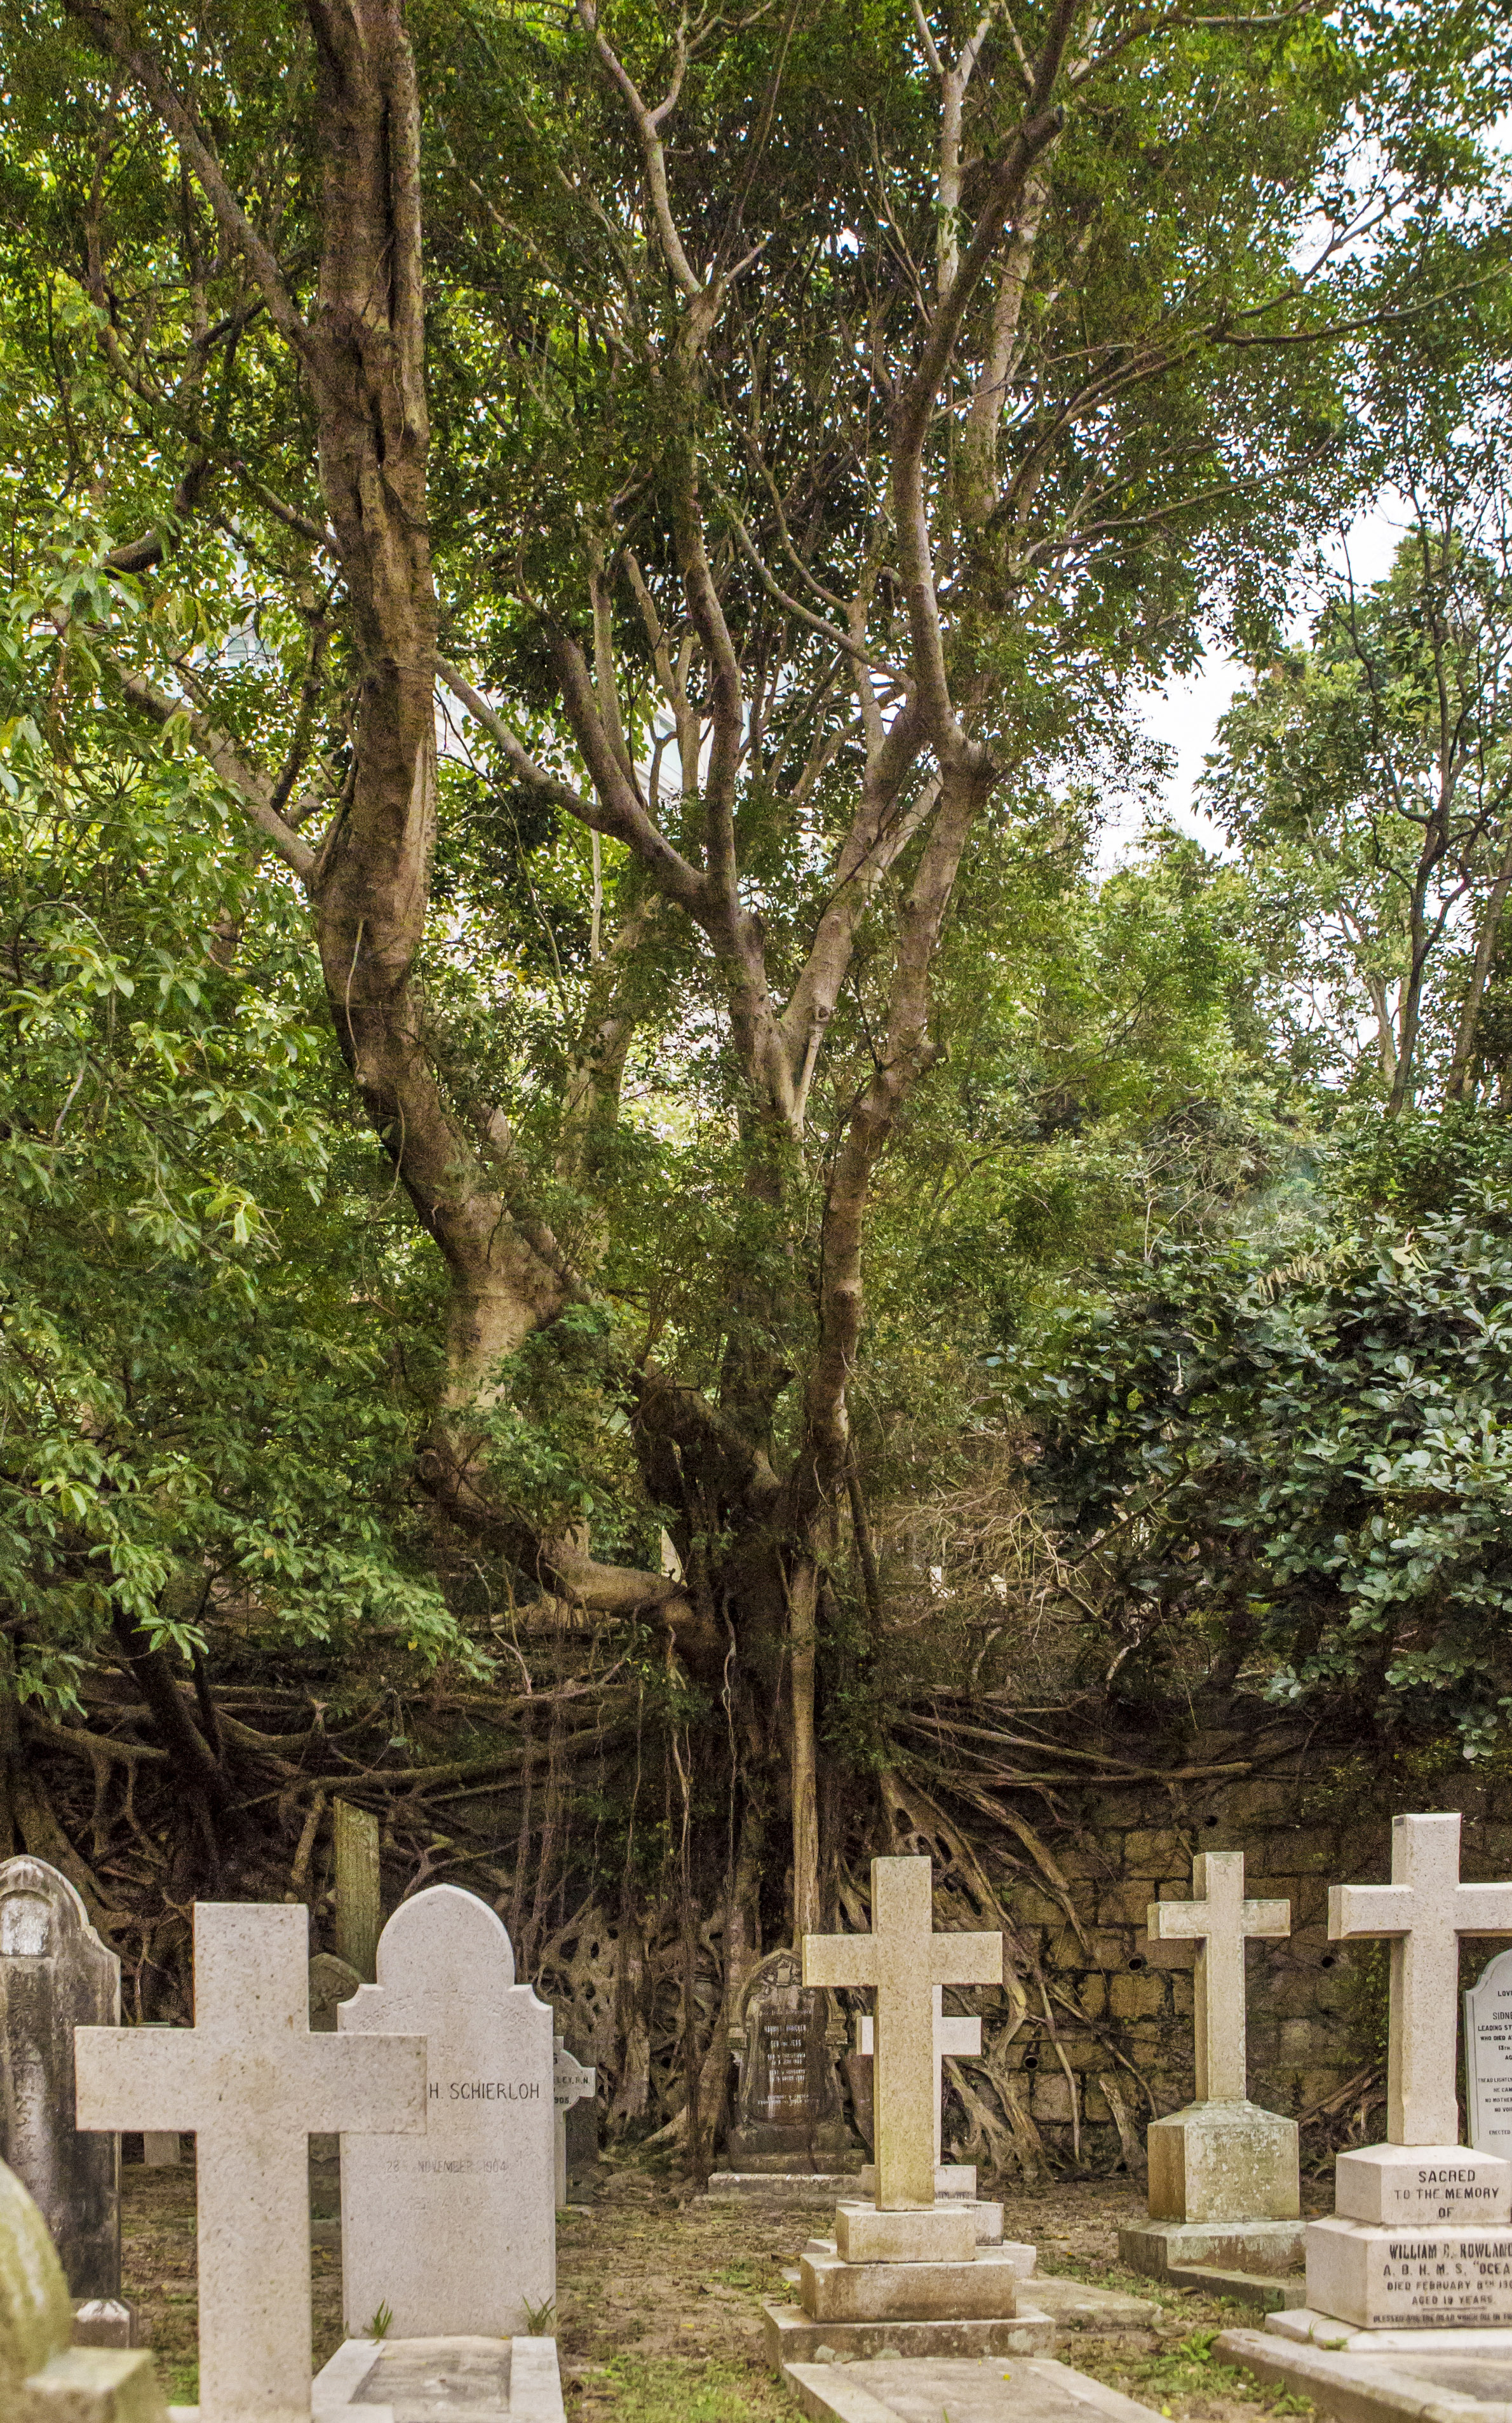 Hong_Kong_Cemetery_trees_and_gravestones